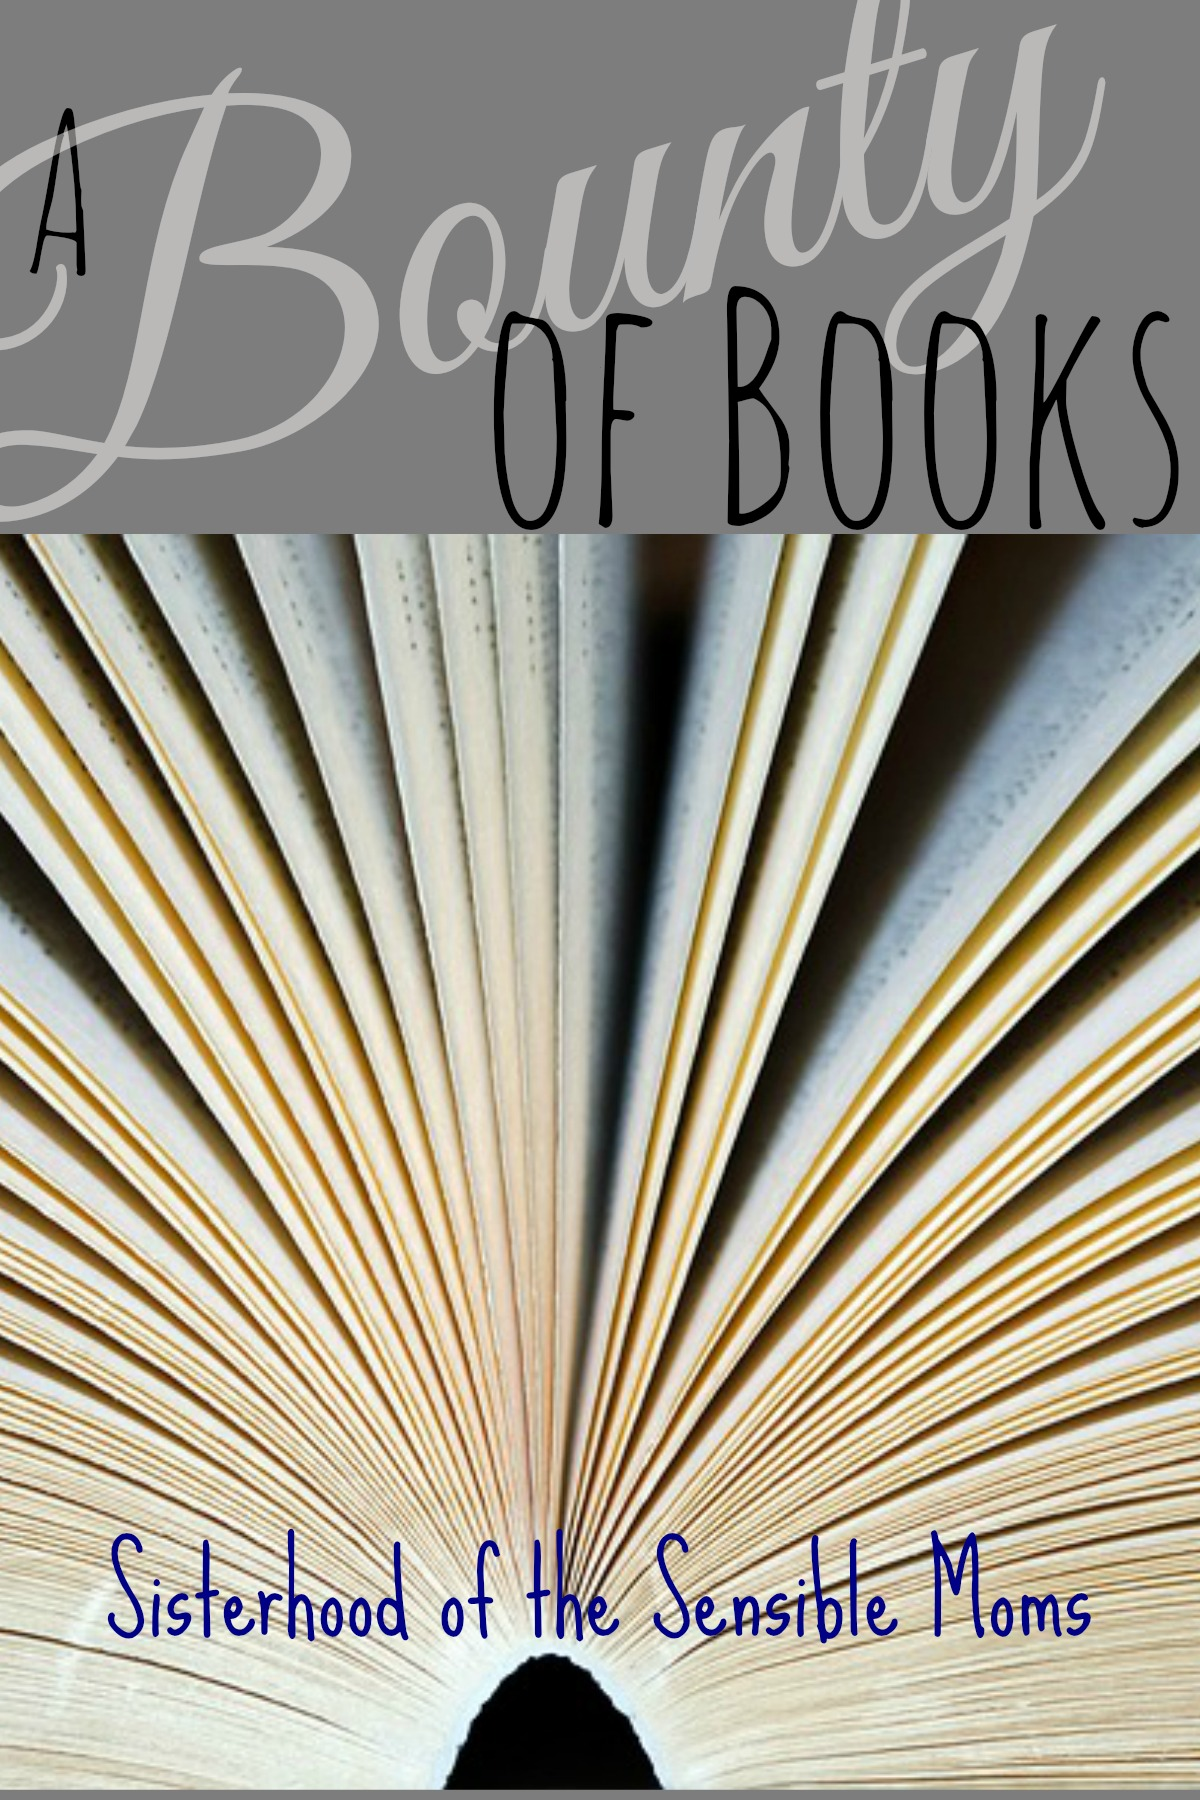 Need a great book? Here are 9 that are great for the carpool line or the sideline.